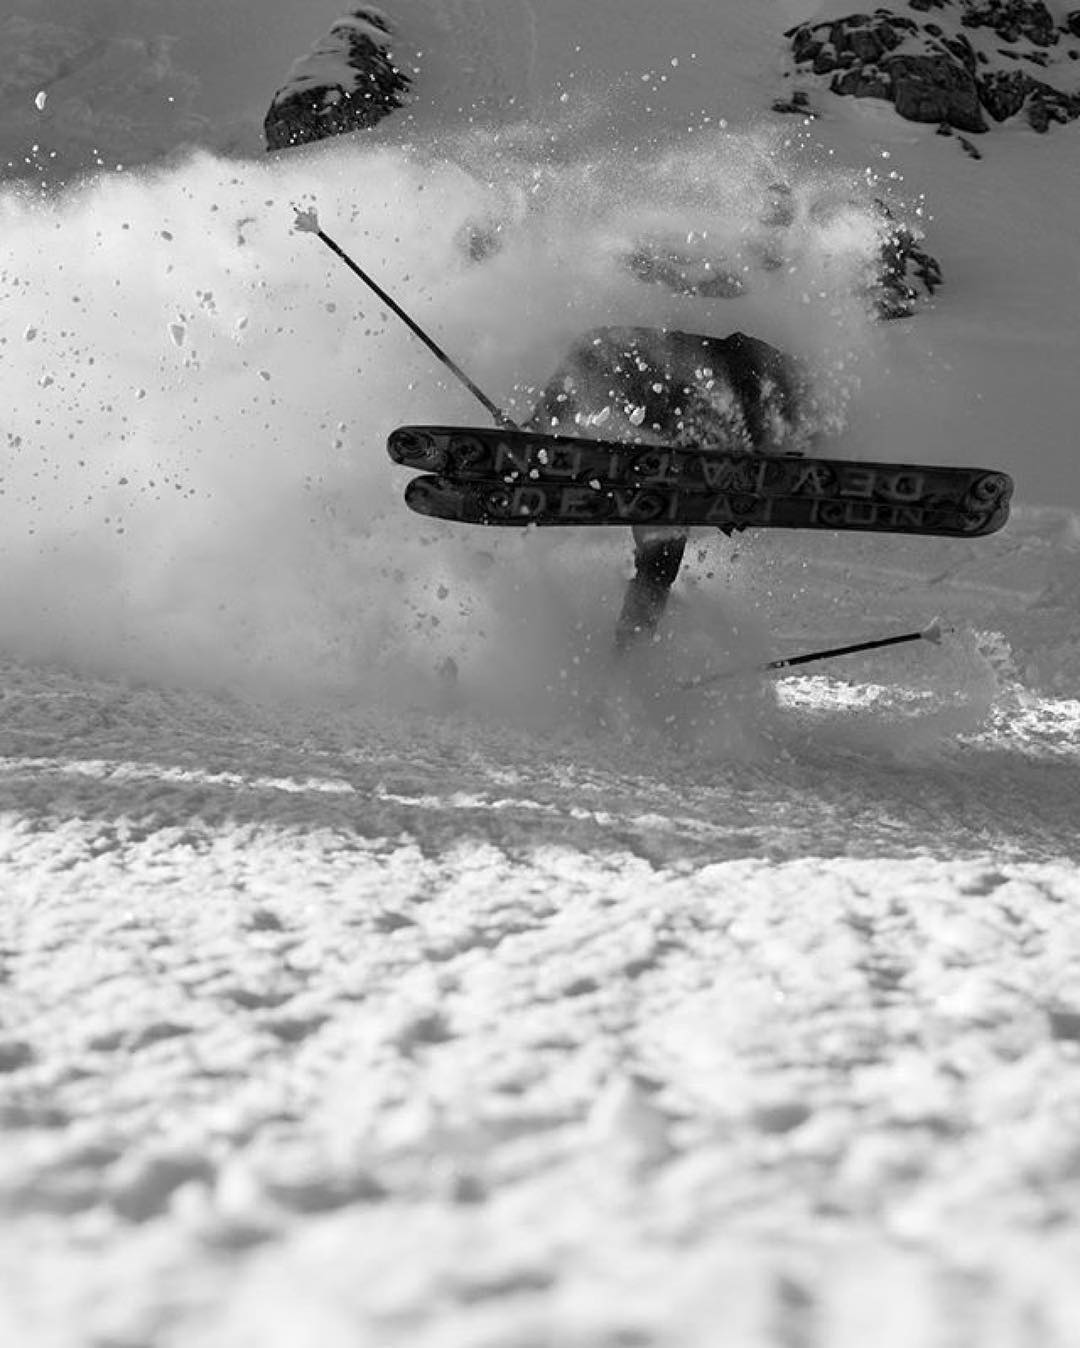 """Oh, you can almost just taste it now! """"Mythical' McKay Richards with a partially inverted Class 4DD #PANDALANCHE hand-drag, captured by photographer Cam McLeod last winter... #TribeUP!  Photo: @_cammcleod_  Repost: @mythicalmckay  #PandaPoles #Skiing"""